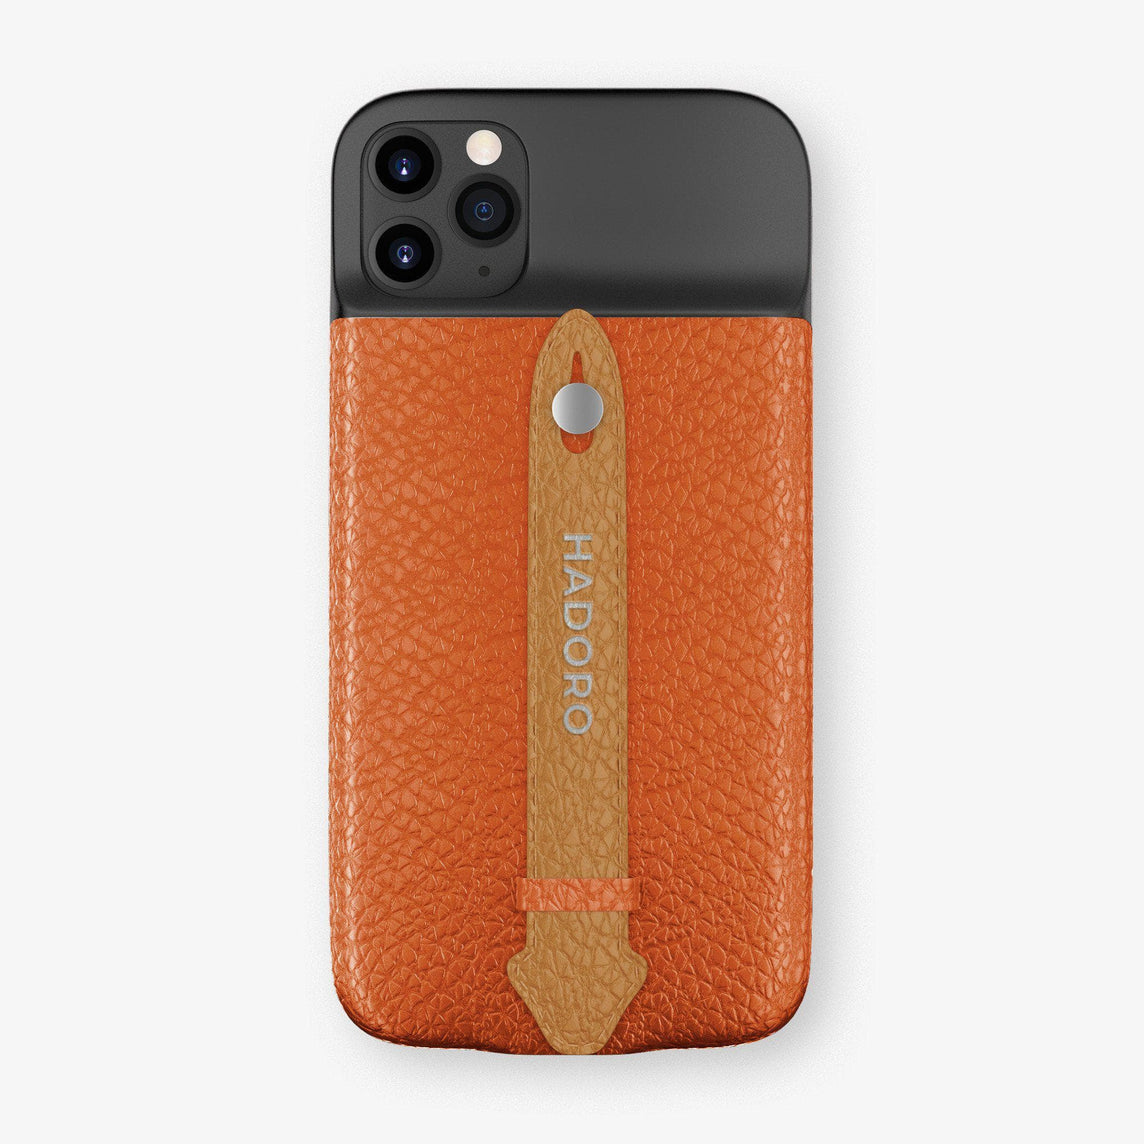 Calfskin Battery Finger Case for iPhone 11 Pro Max | Orange/Cognac - Stainless Steel without-personalization